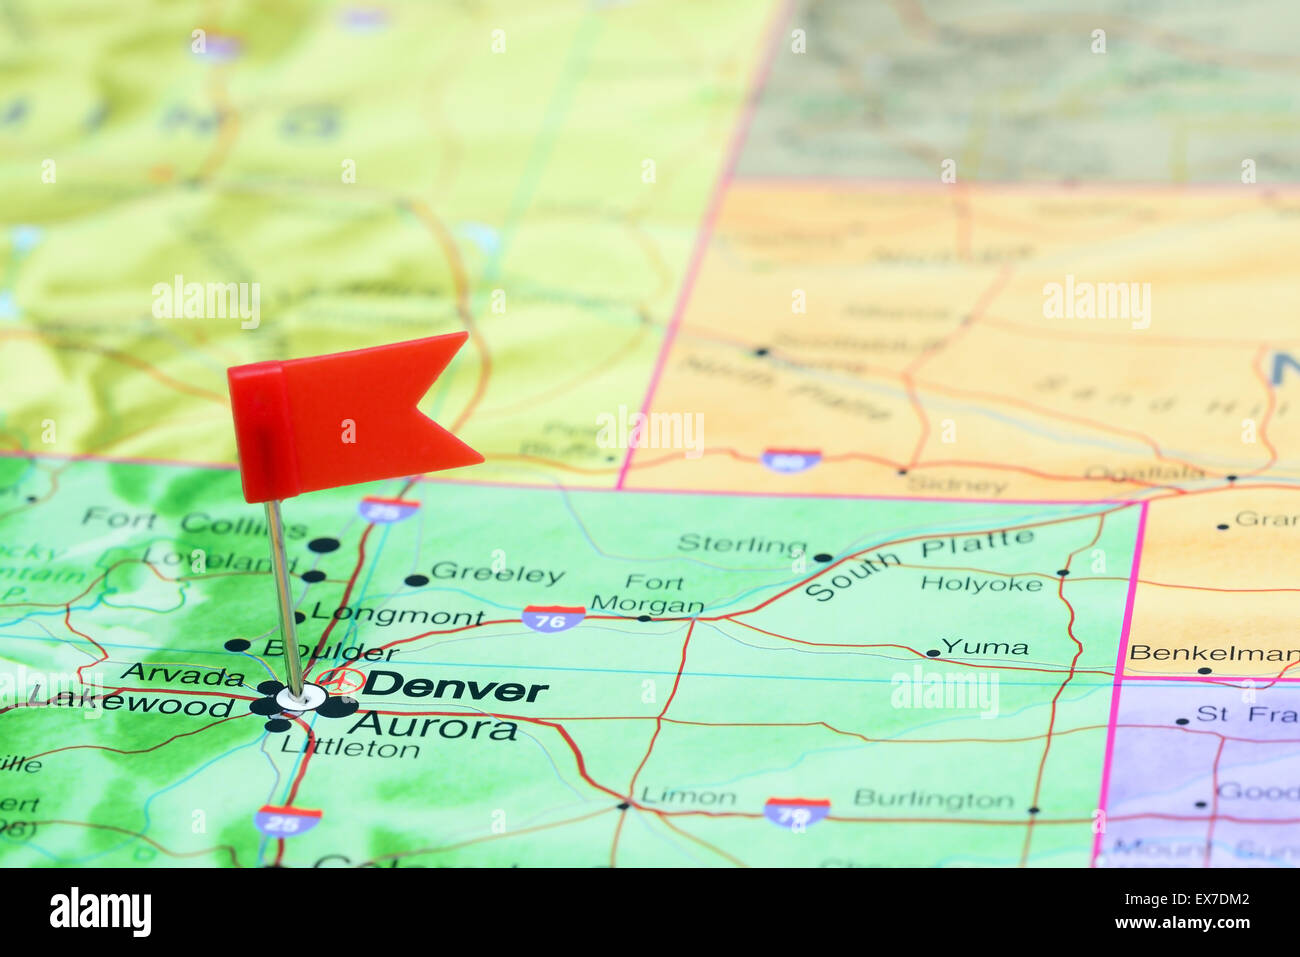 Denver pinned on a map of USA Stock Photo: 84986946 - Alamy on fishing map of usa, co state map in usa, map of new jersey usa, denver col usa map, denver co us, map of florida usa, map of new mexico usa, colorado map usa, denver colorado map, detroit map usa,